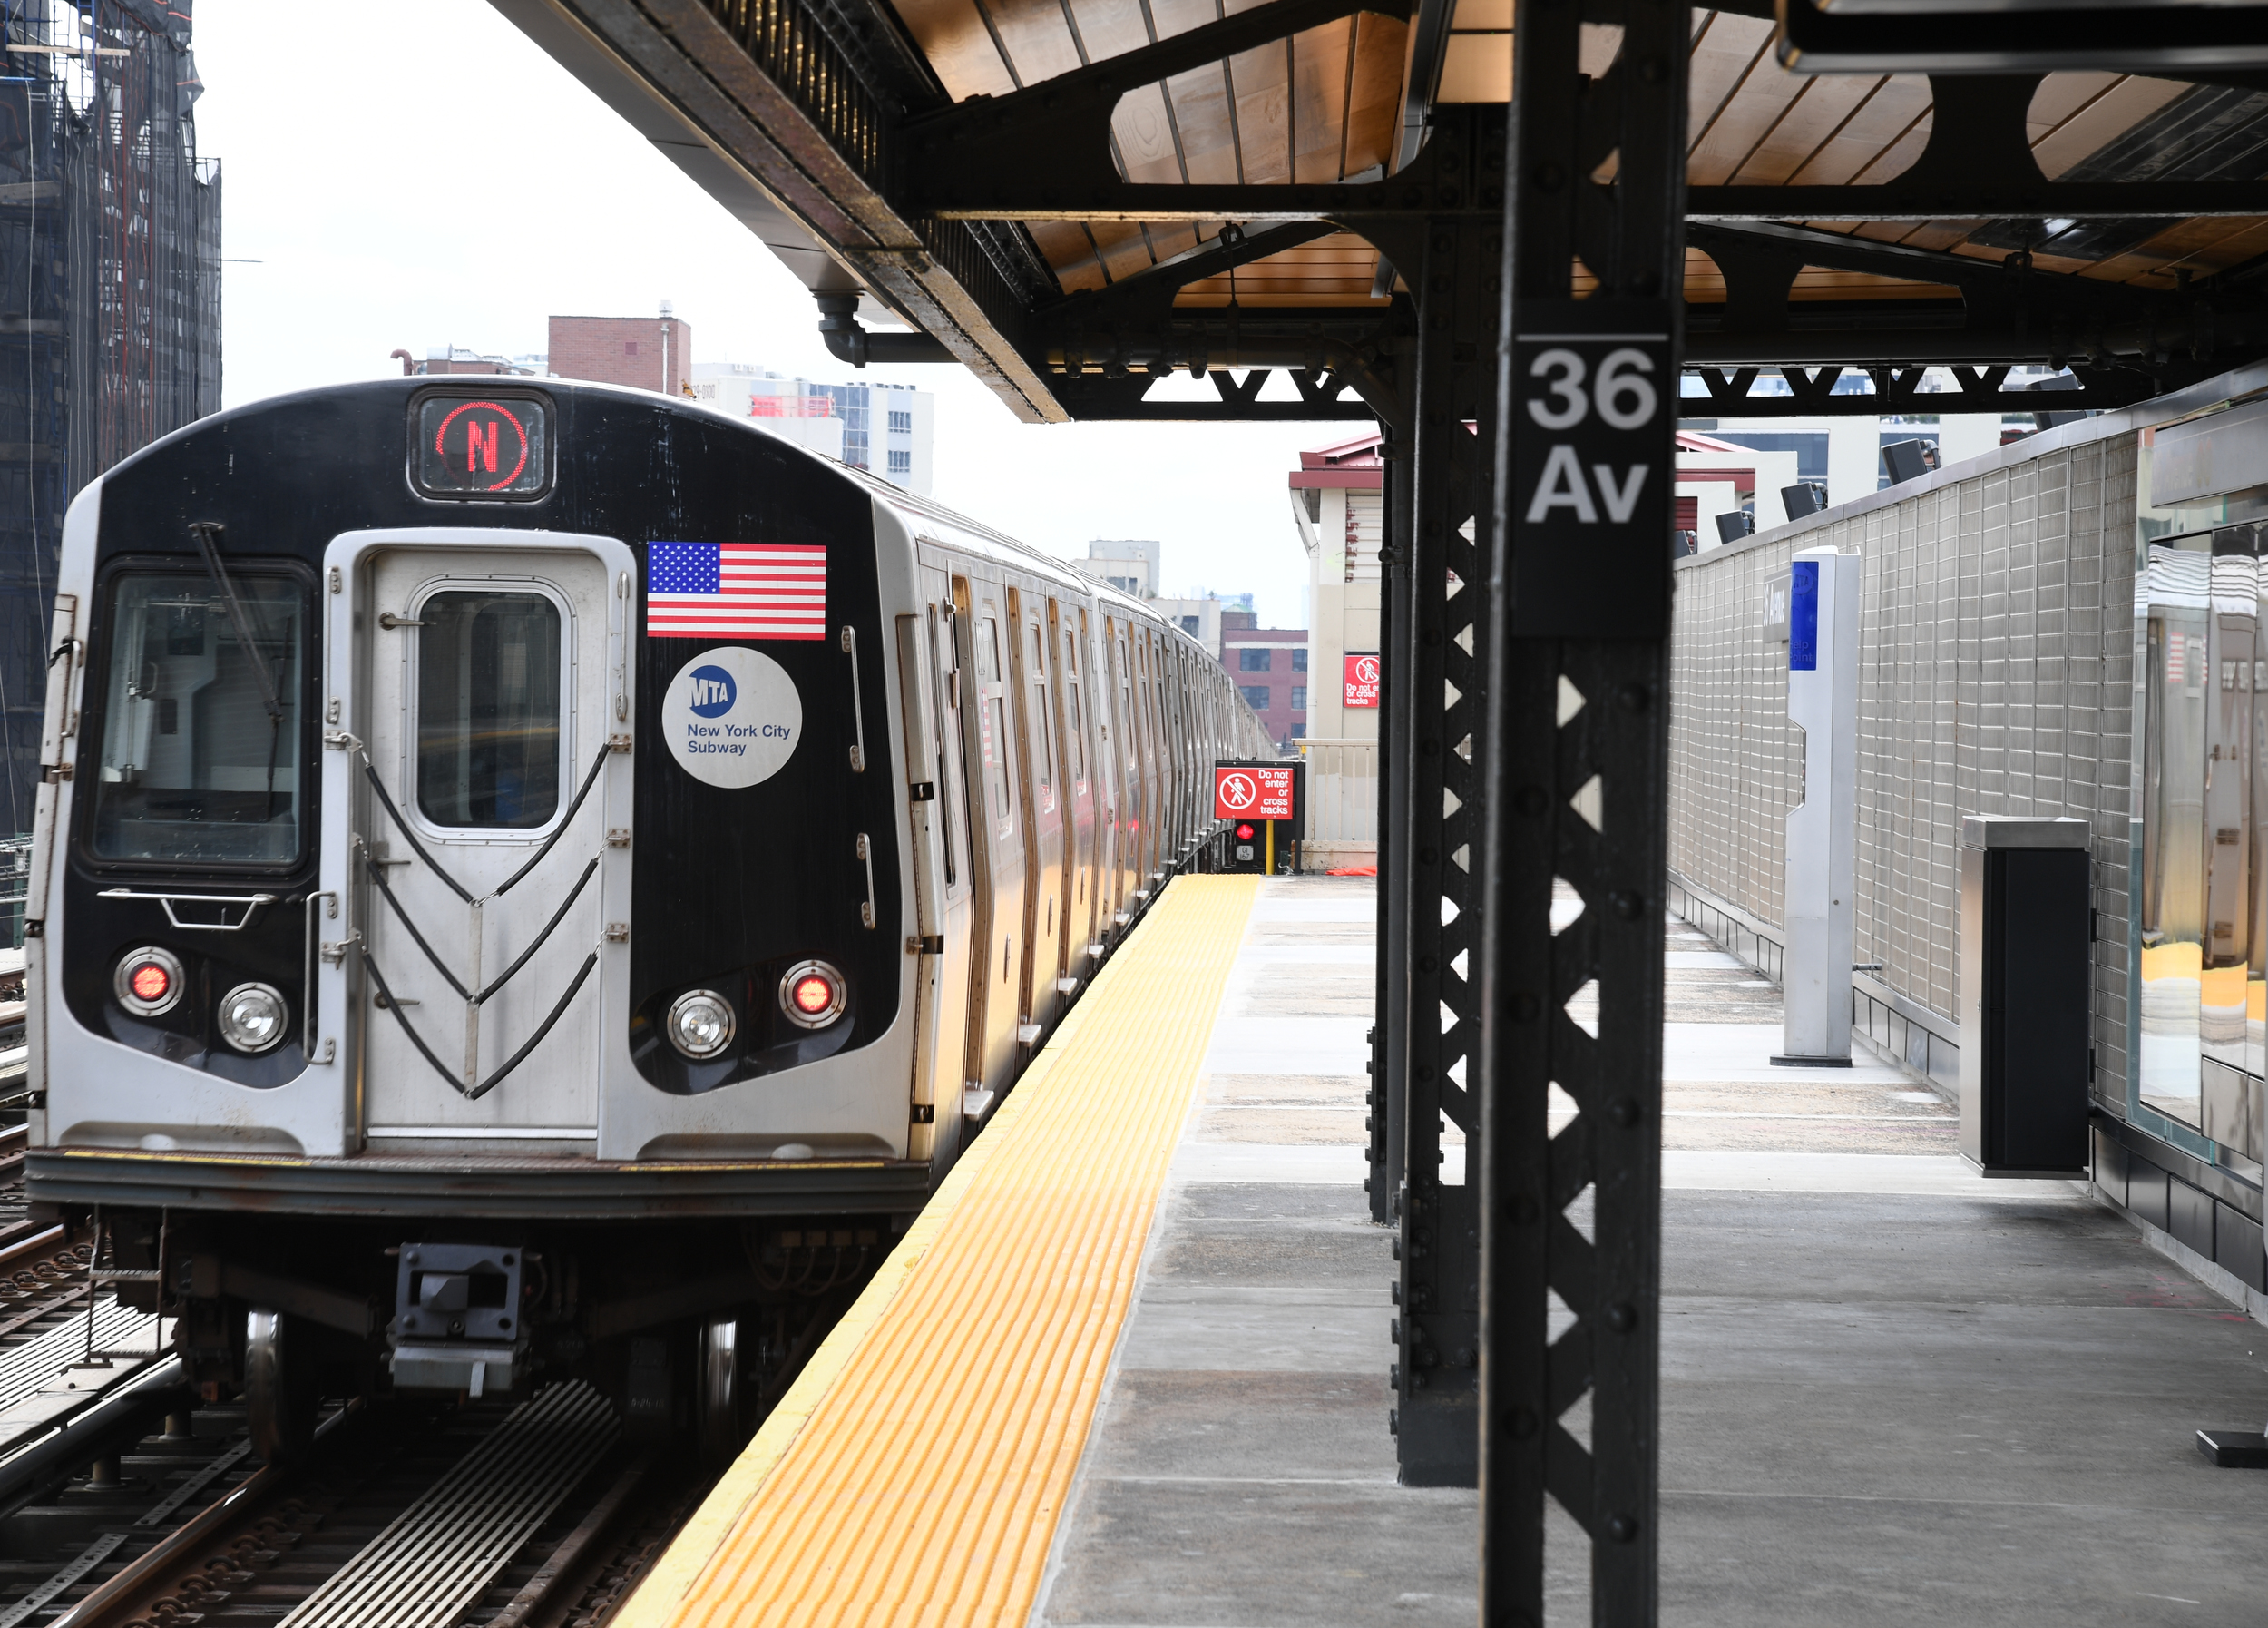 The 36th Avenue Station on the N/W line. Photo courtesy of the MTA.